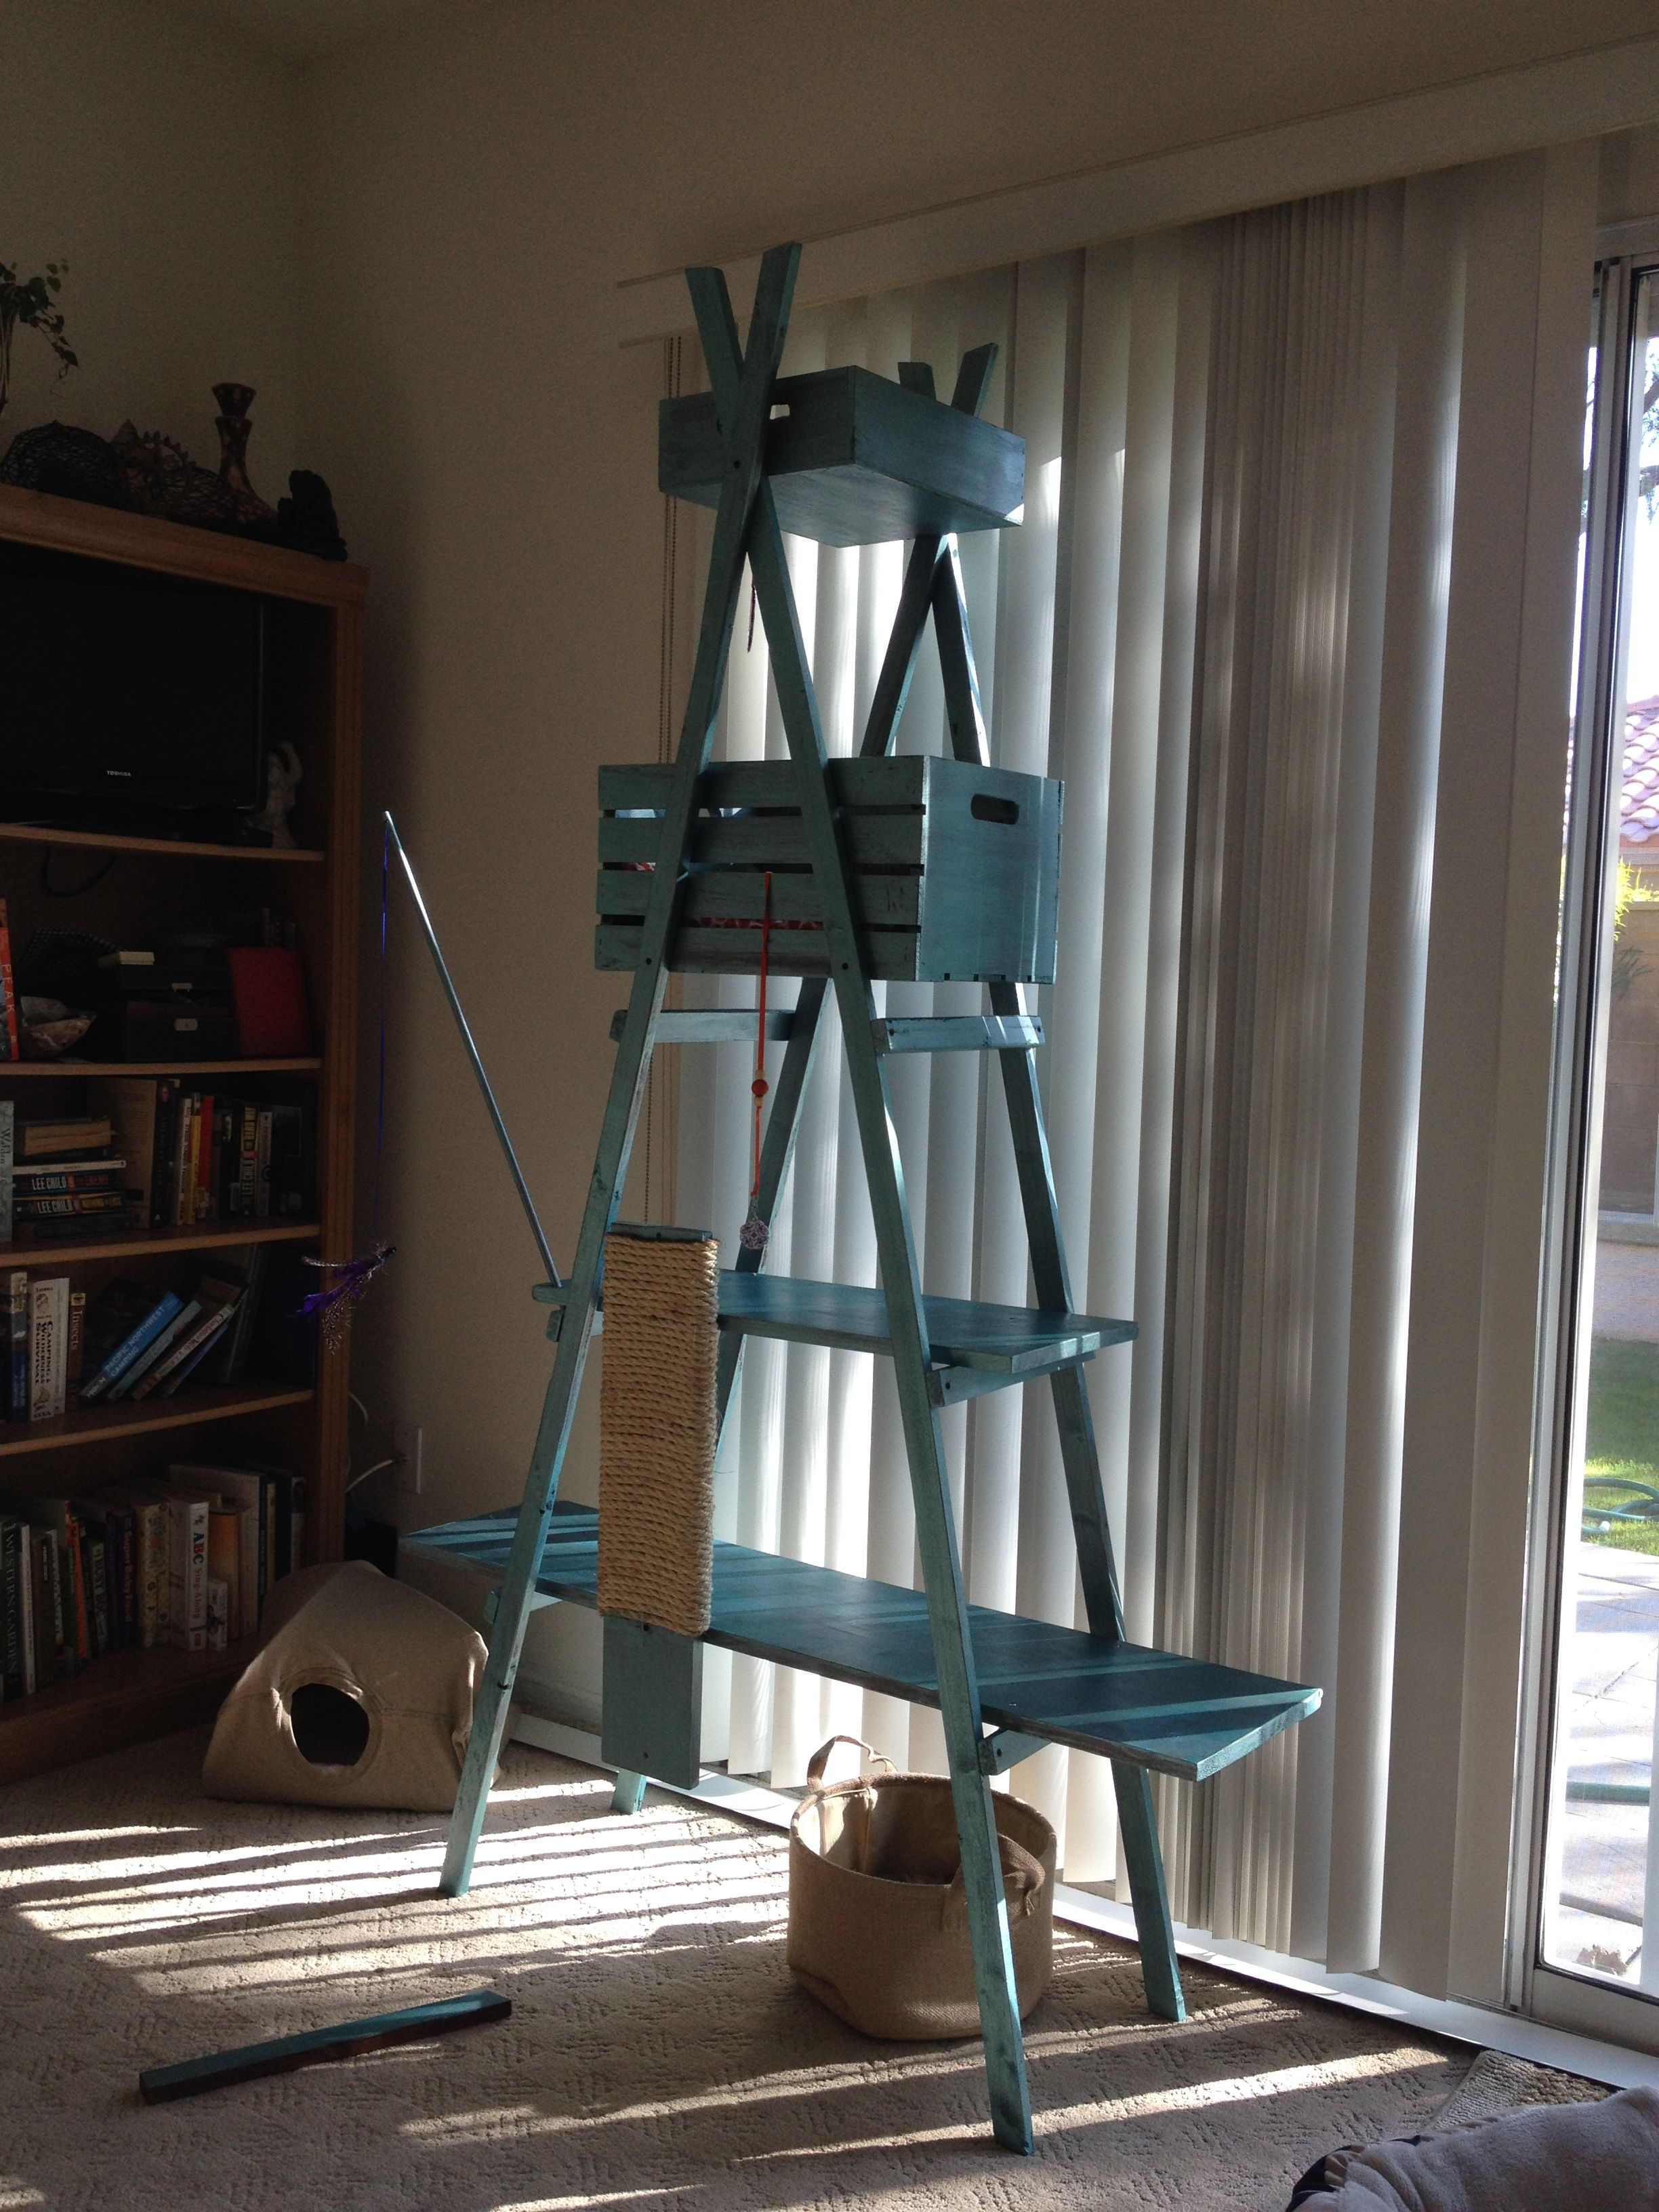 Diy Cat Climber. Under $25. Ladder Style. Made With